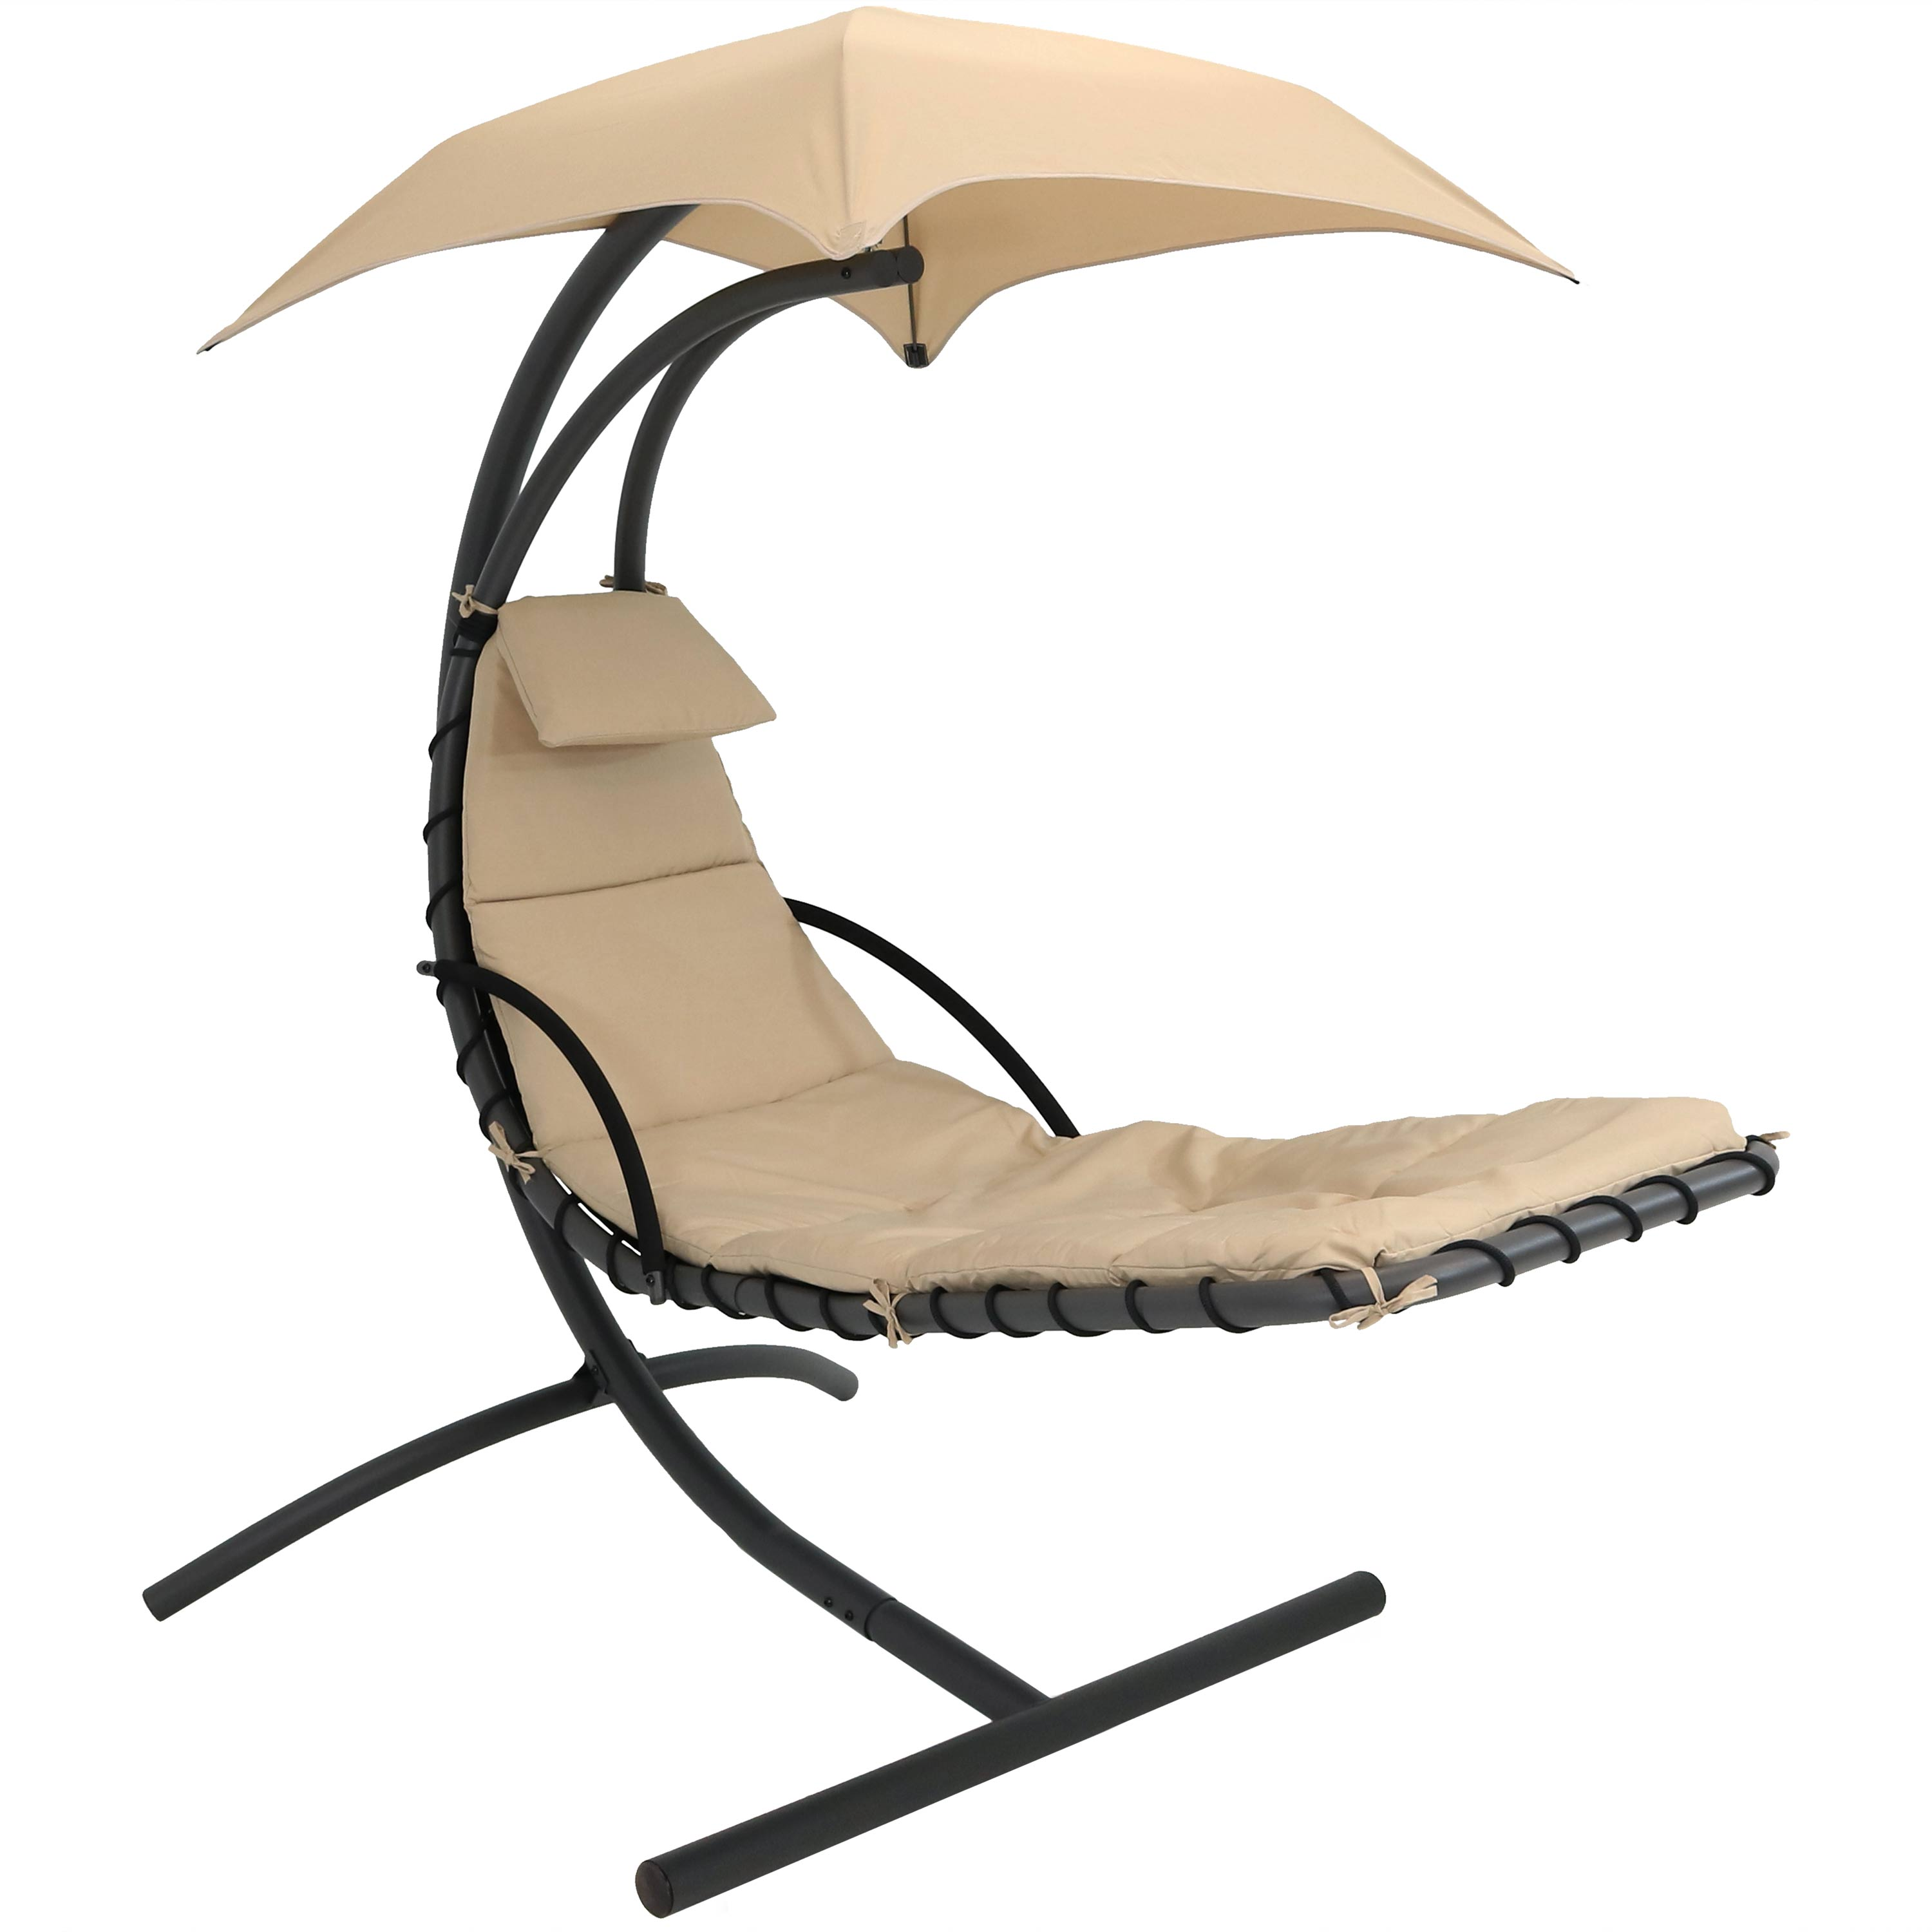 Floating Chaise Lounger Hanging Hammock Patio Swing Chair Canopy Arc Stand Beige Photo